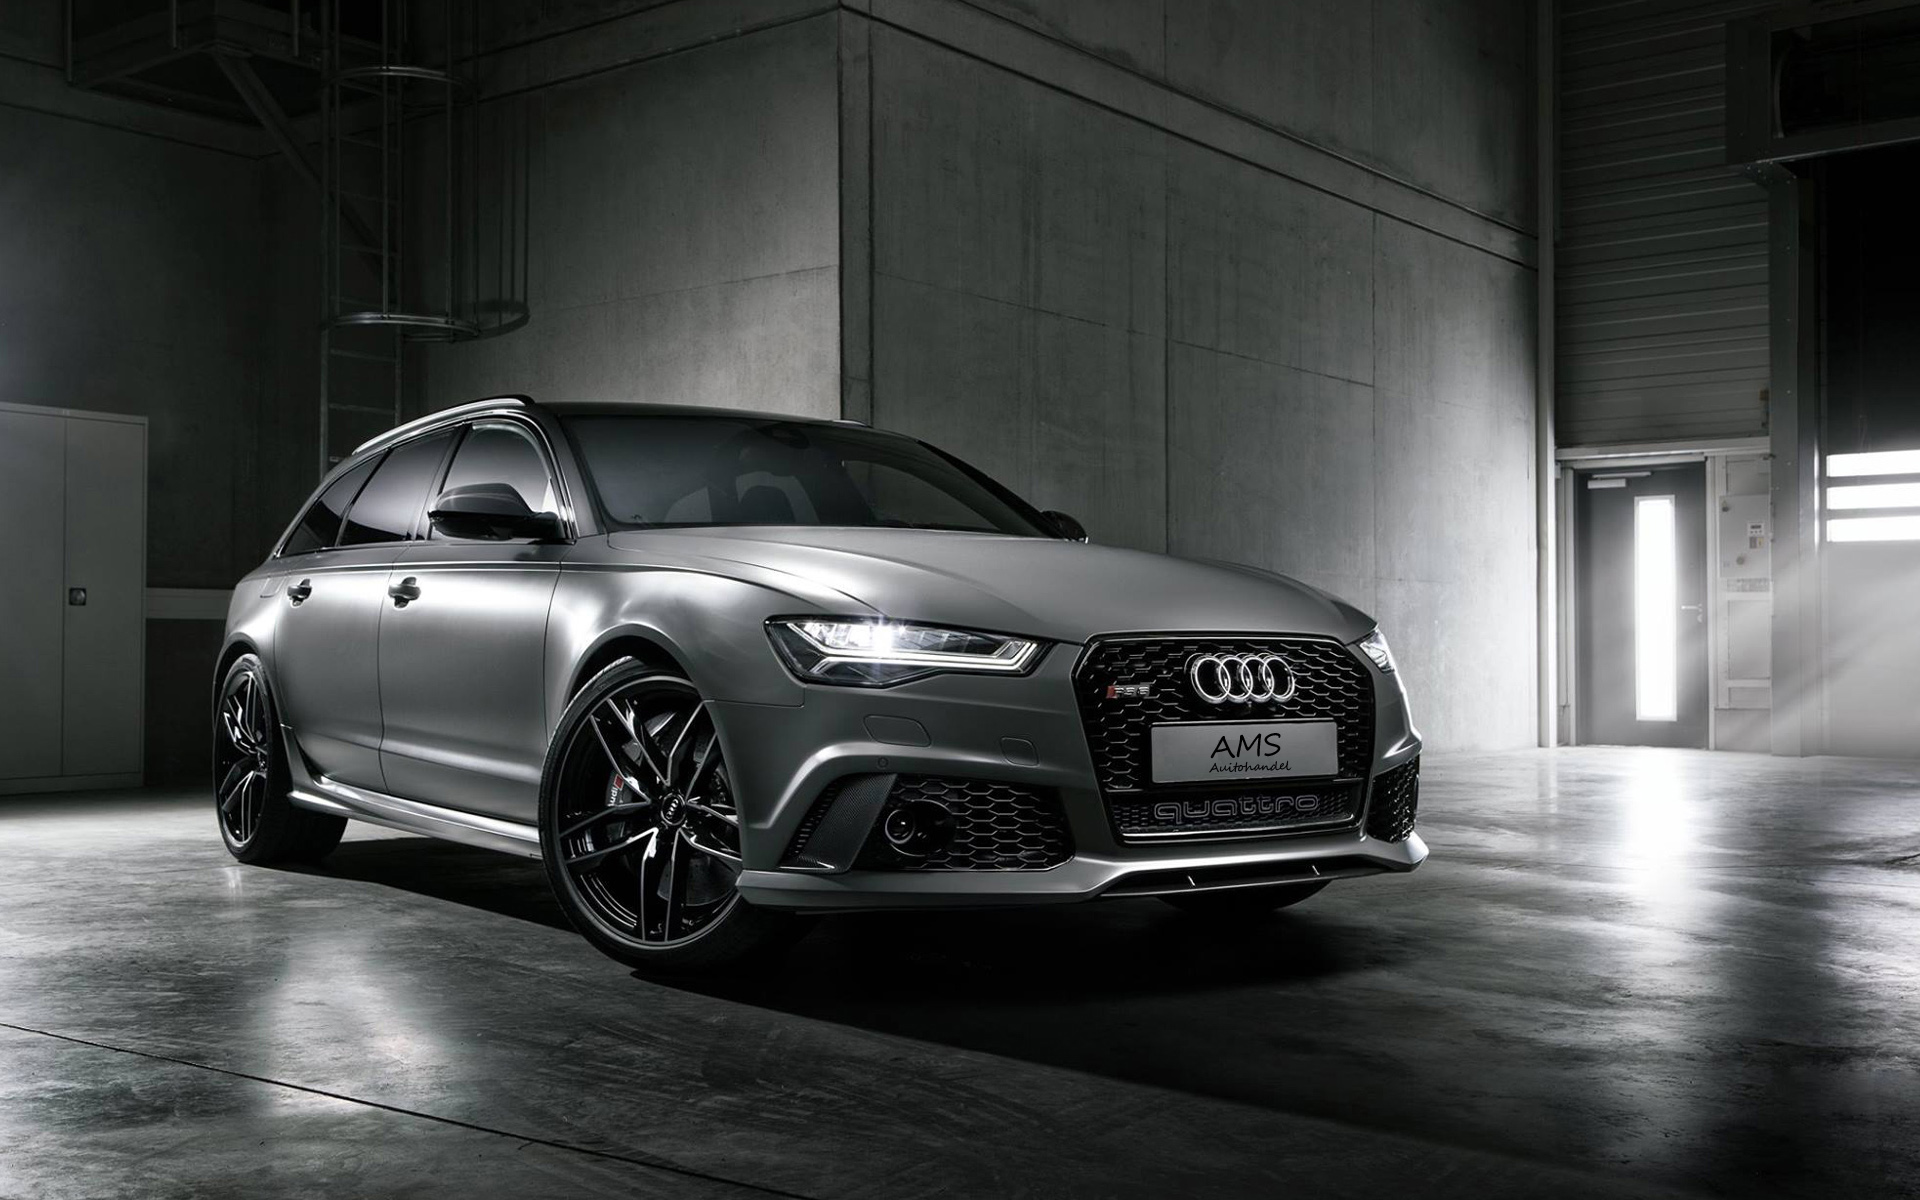 2015_audi_rs6_avant_exclusive-wide